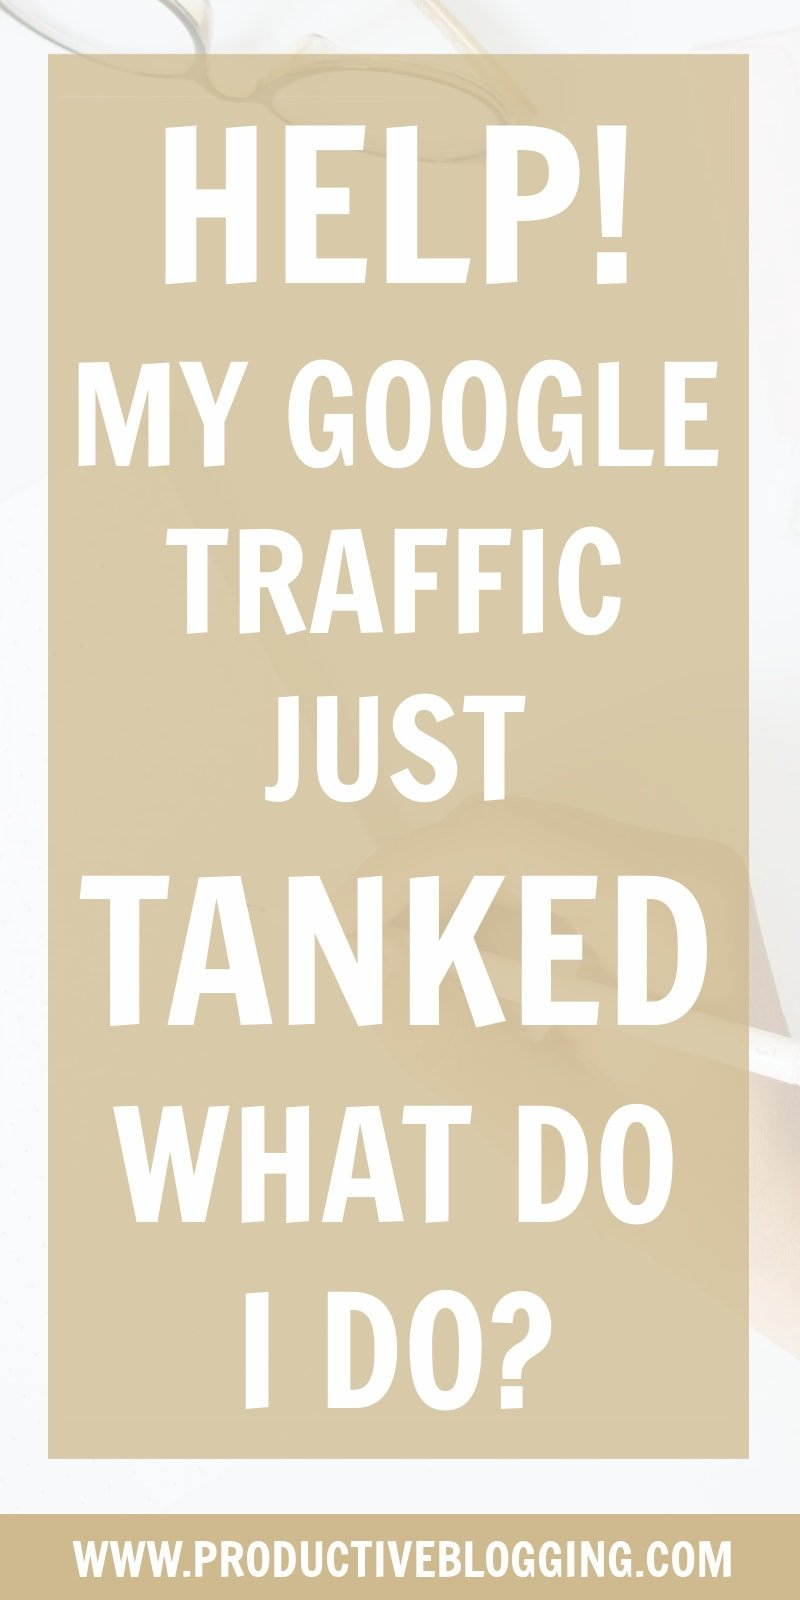 Freaking out right now because your Google traffic just taken a nosedive?? Take a deep calming breath and then read my step-by-step guide on exactly what to do if your Google traffic suddenly drops. #googletraffic #growyourblog #bloggrowth #SEO #SEOtips #SEOhacks #searchengineoptimization #SEOforbloggers #SEOforbeginners #beginnersSEO #growyourblog #bloggrowth #bloggingtips #blogtips #blogging #bloggers #productiveblogging